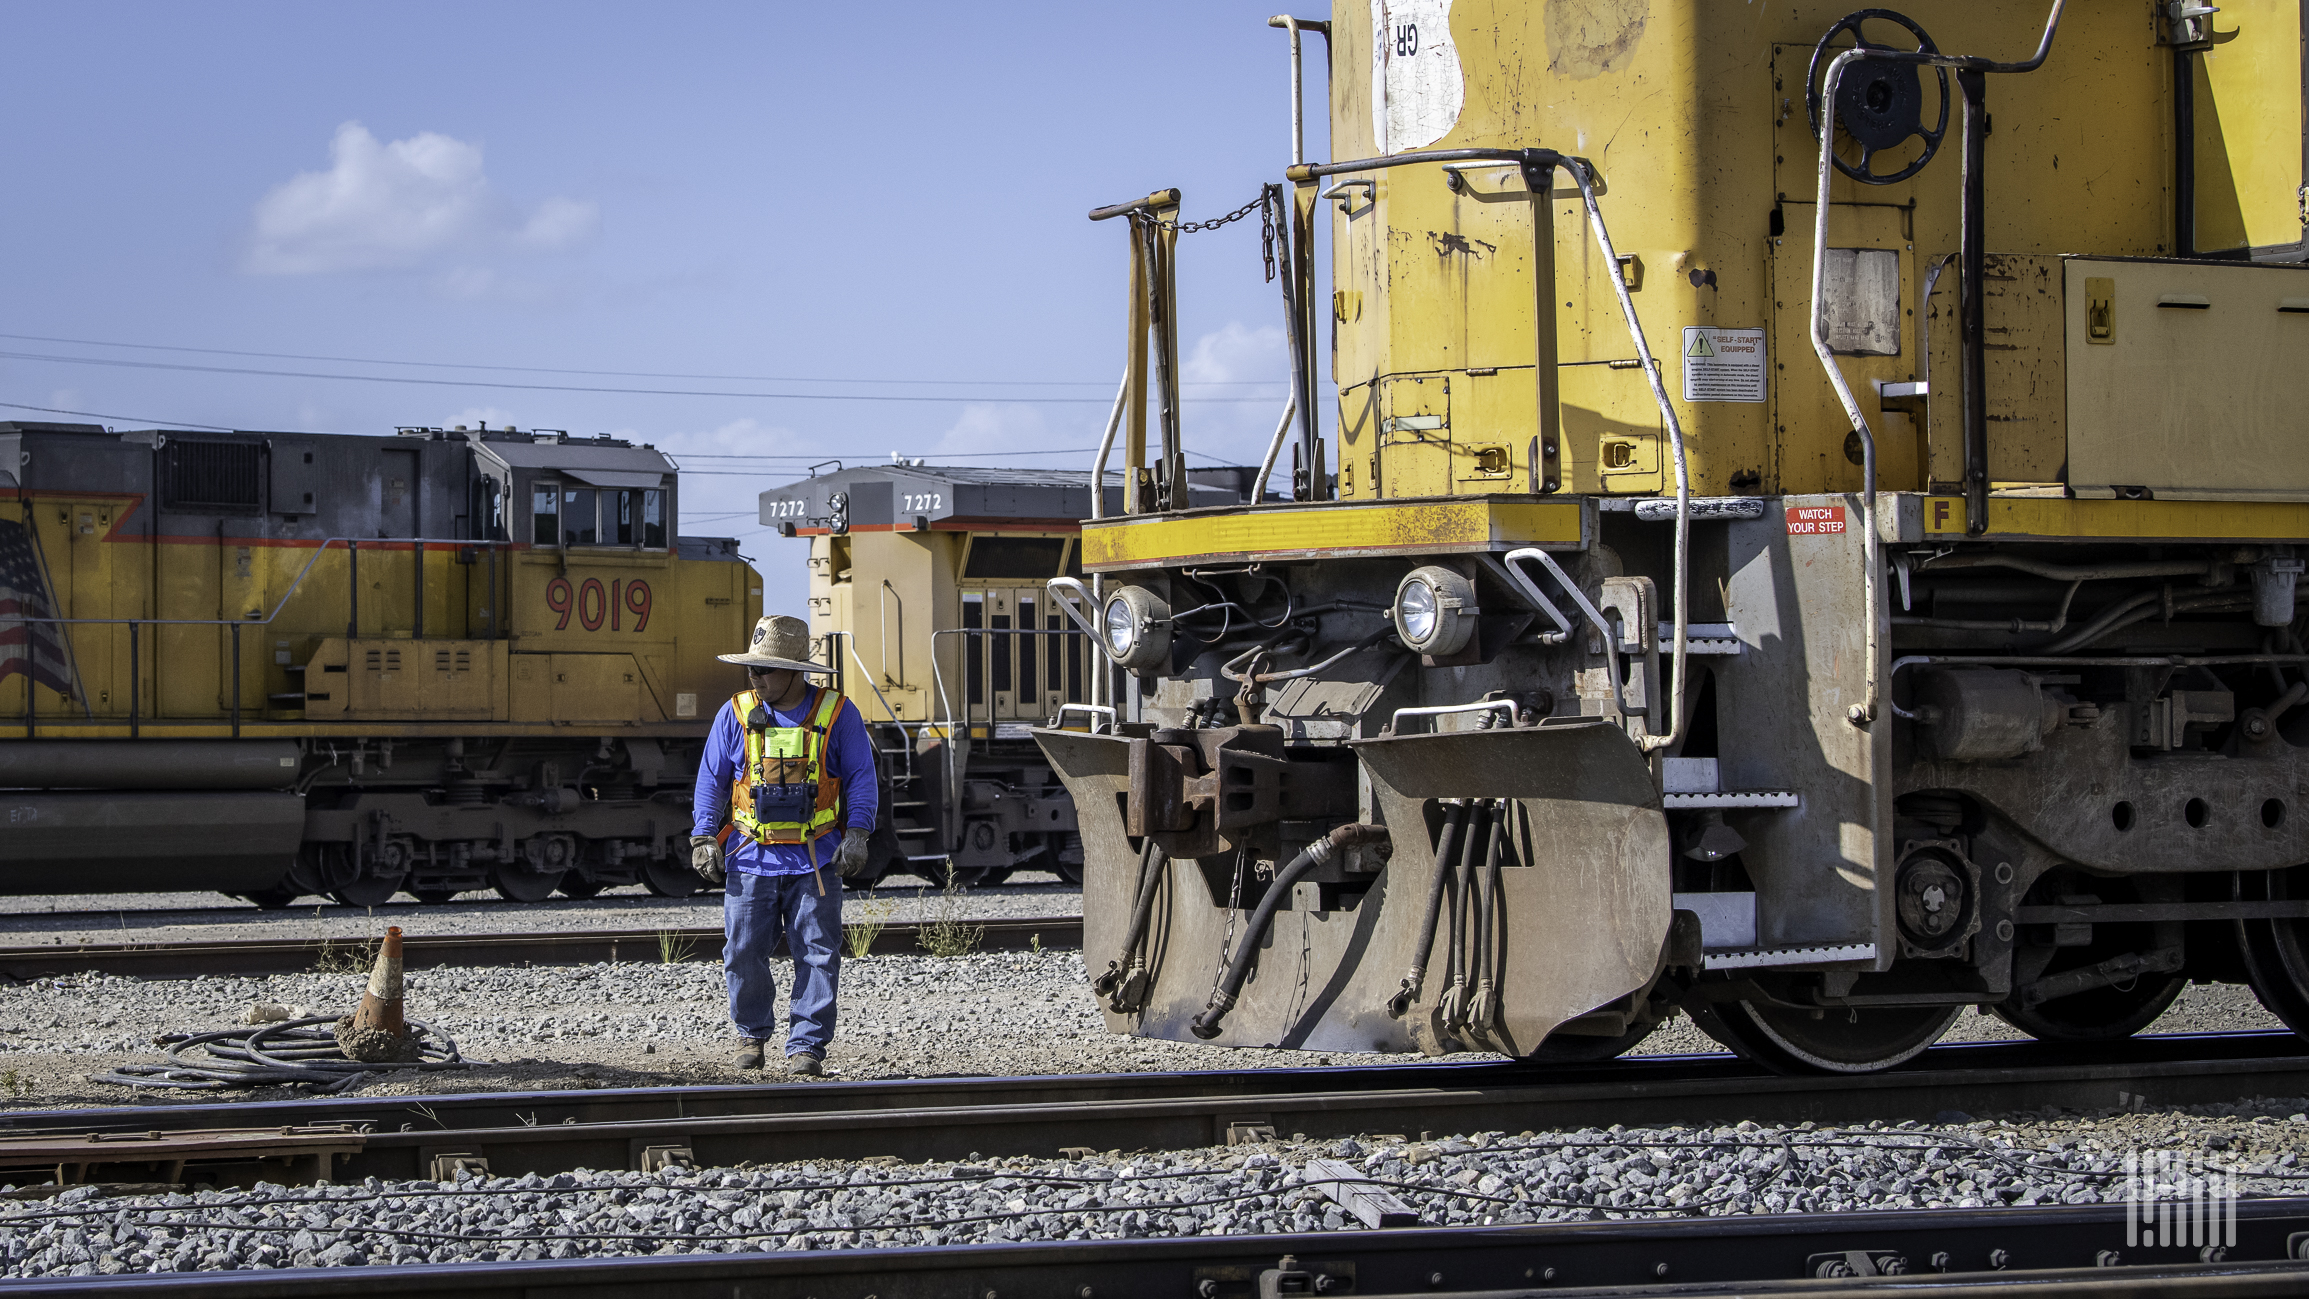 A photograph of a man walking by a locomotive in a rail yard.